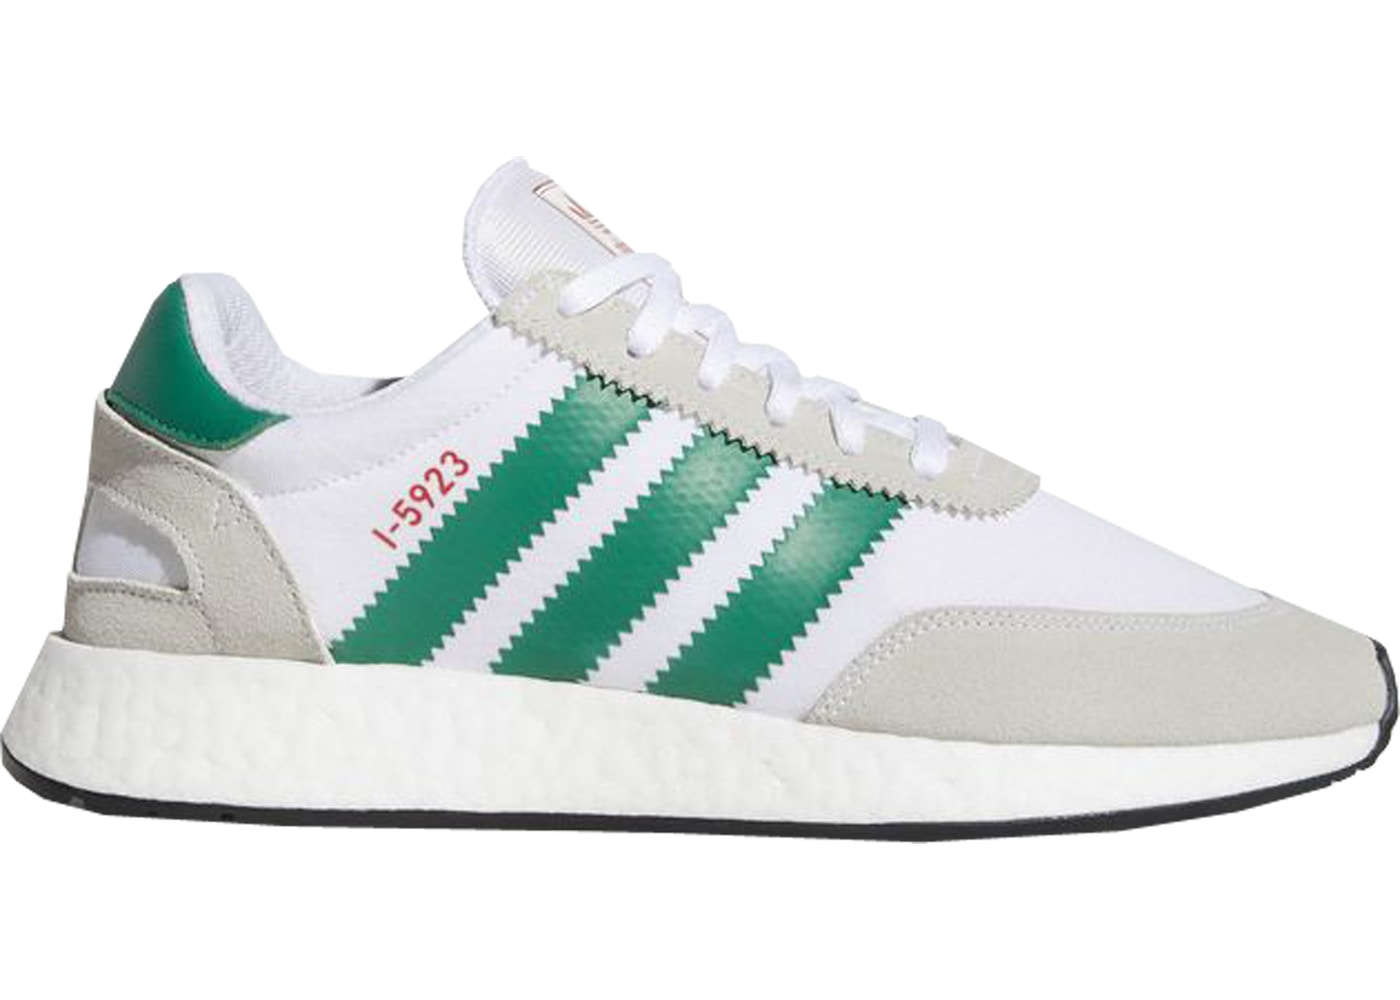 quality design fd78b 79a5c Buy adidas Iniki Shoes & Deadstock Sneakers